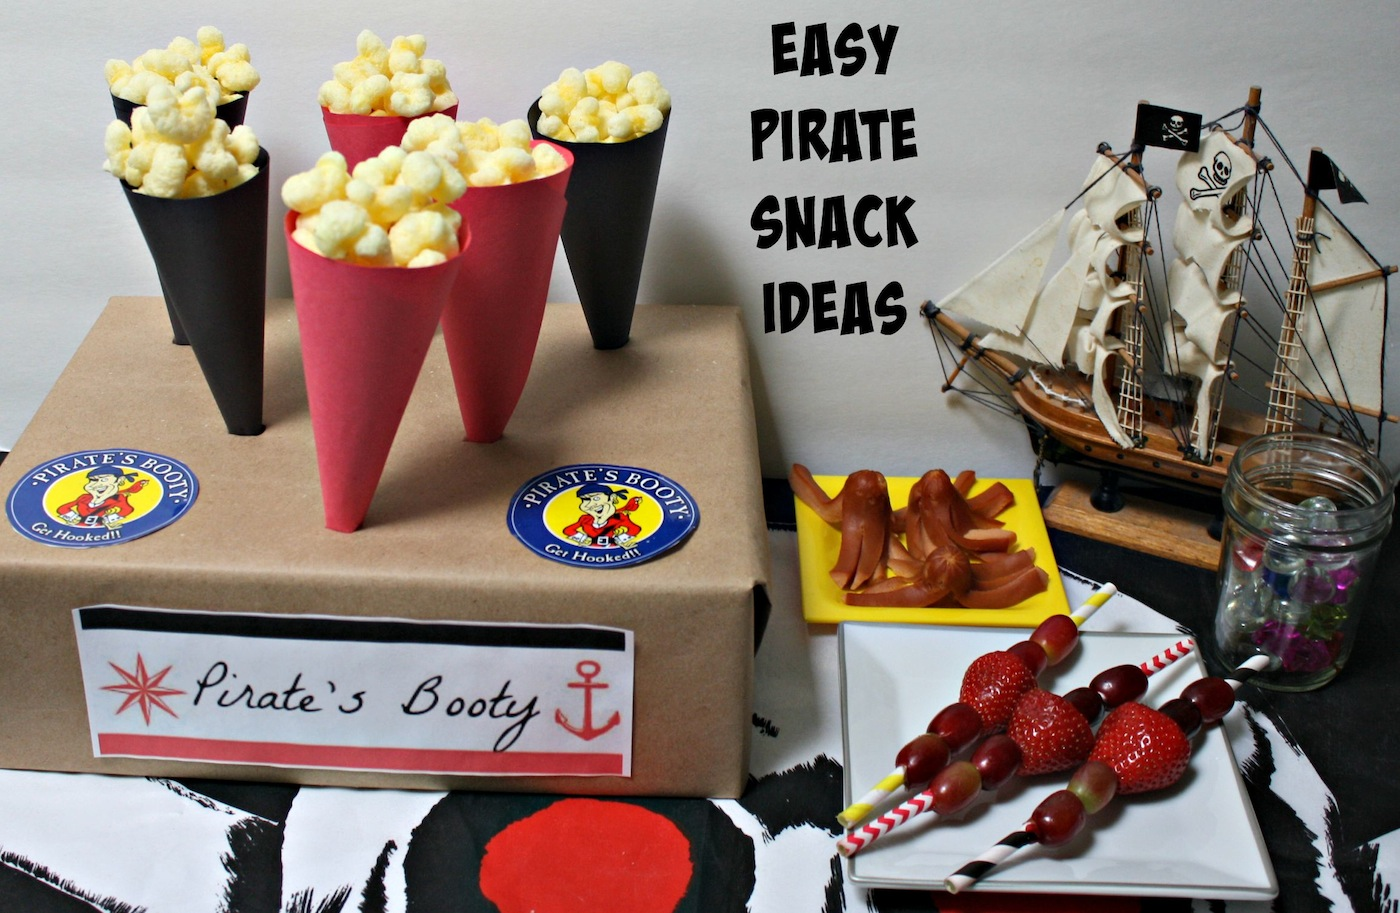 Easy Pirate Snack Ideas